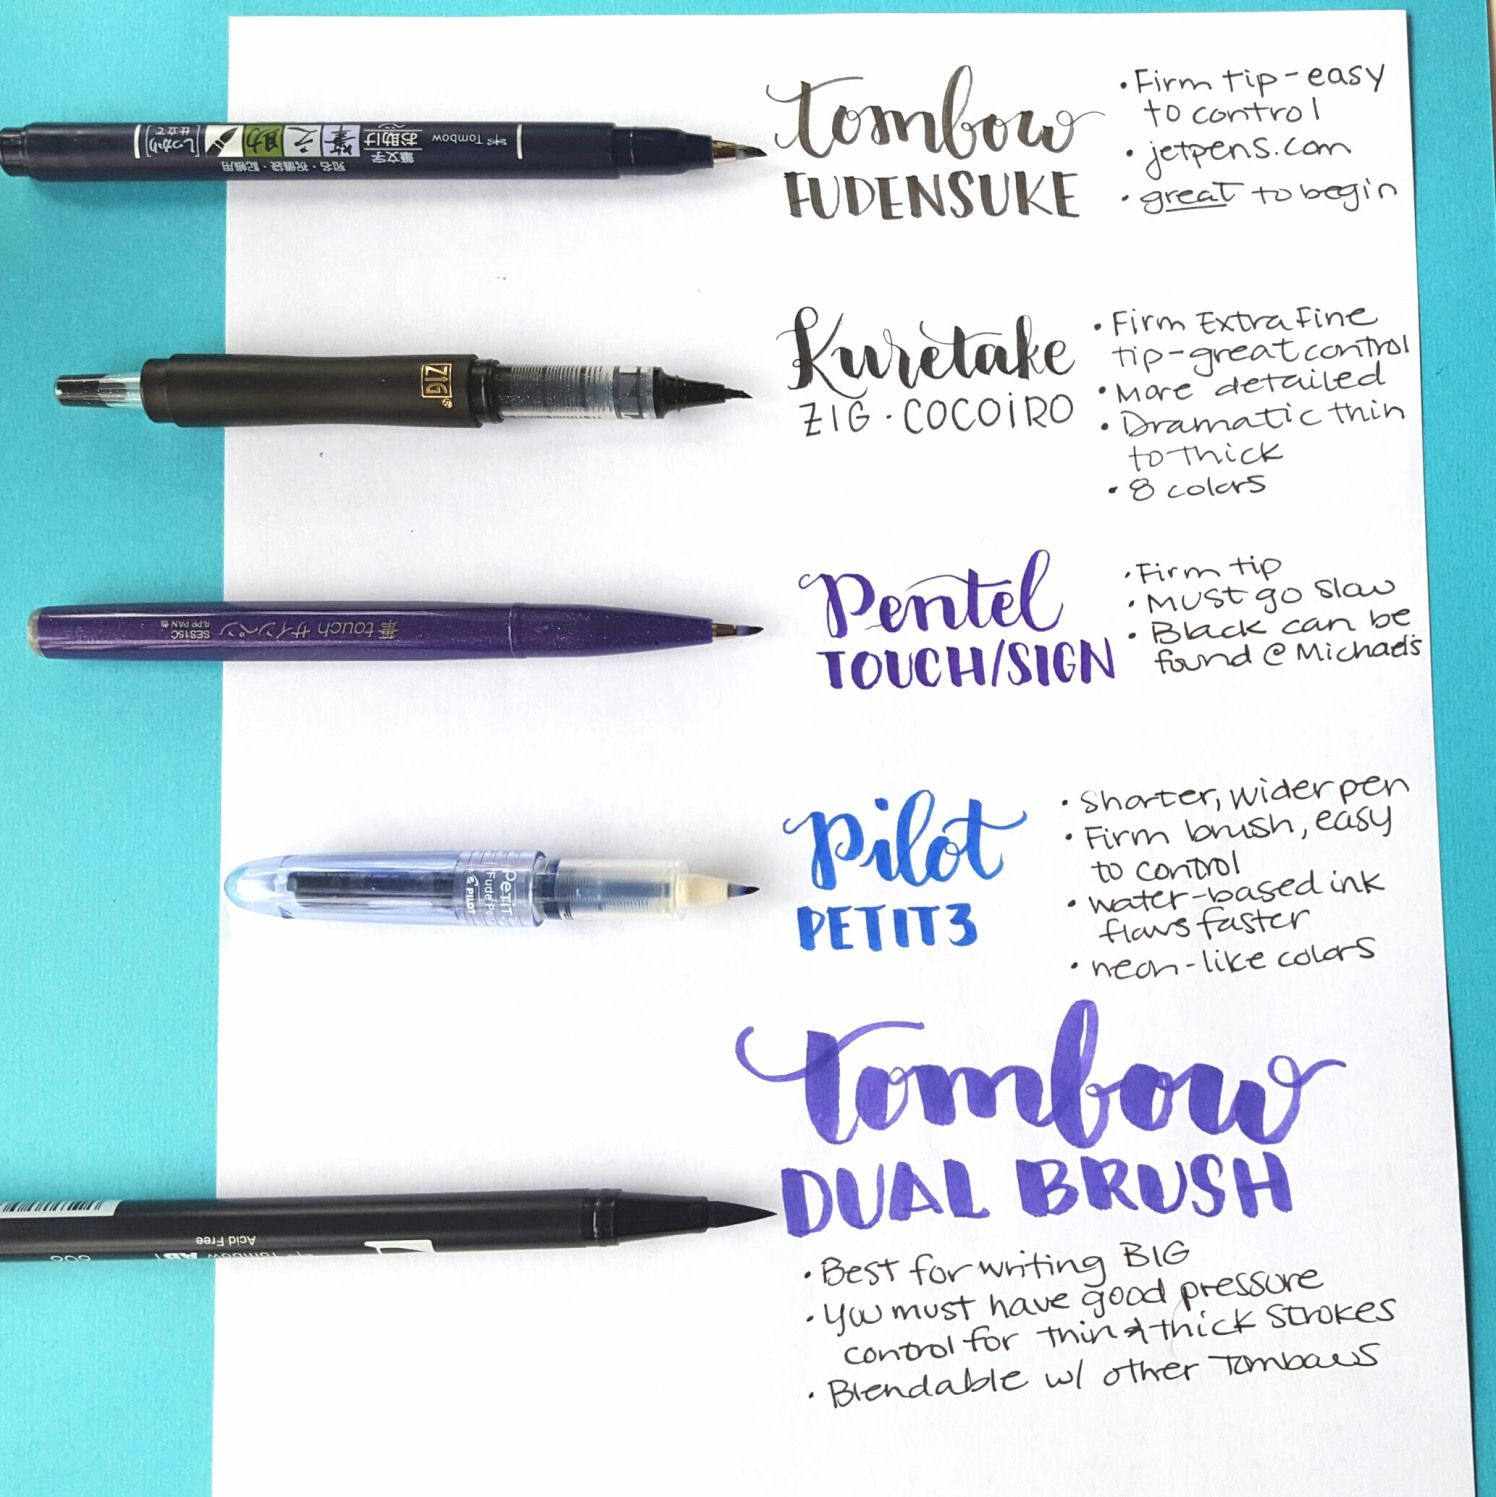 Great intro to hand lettering brush pens by jessica from